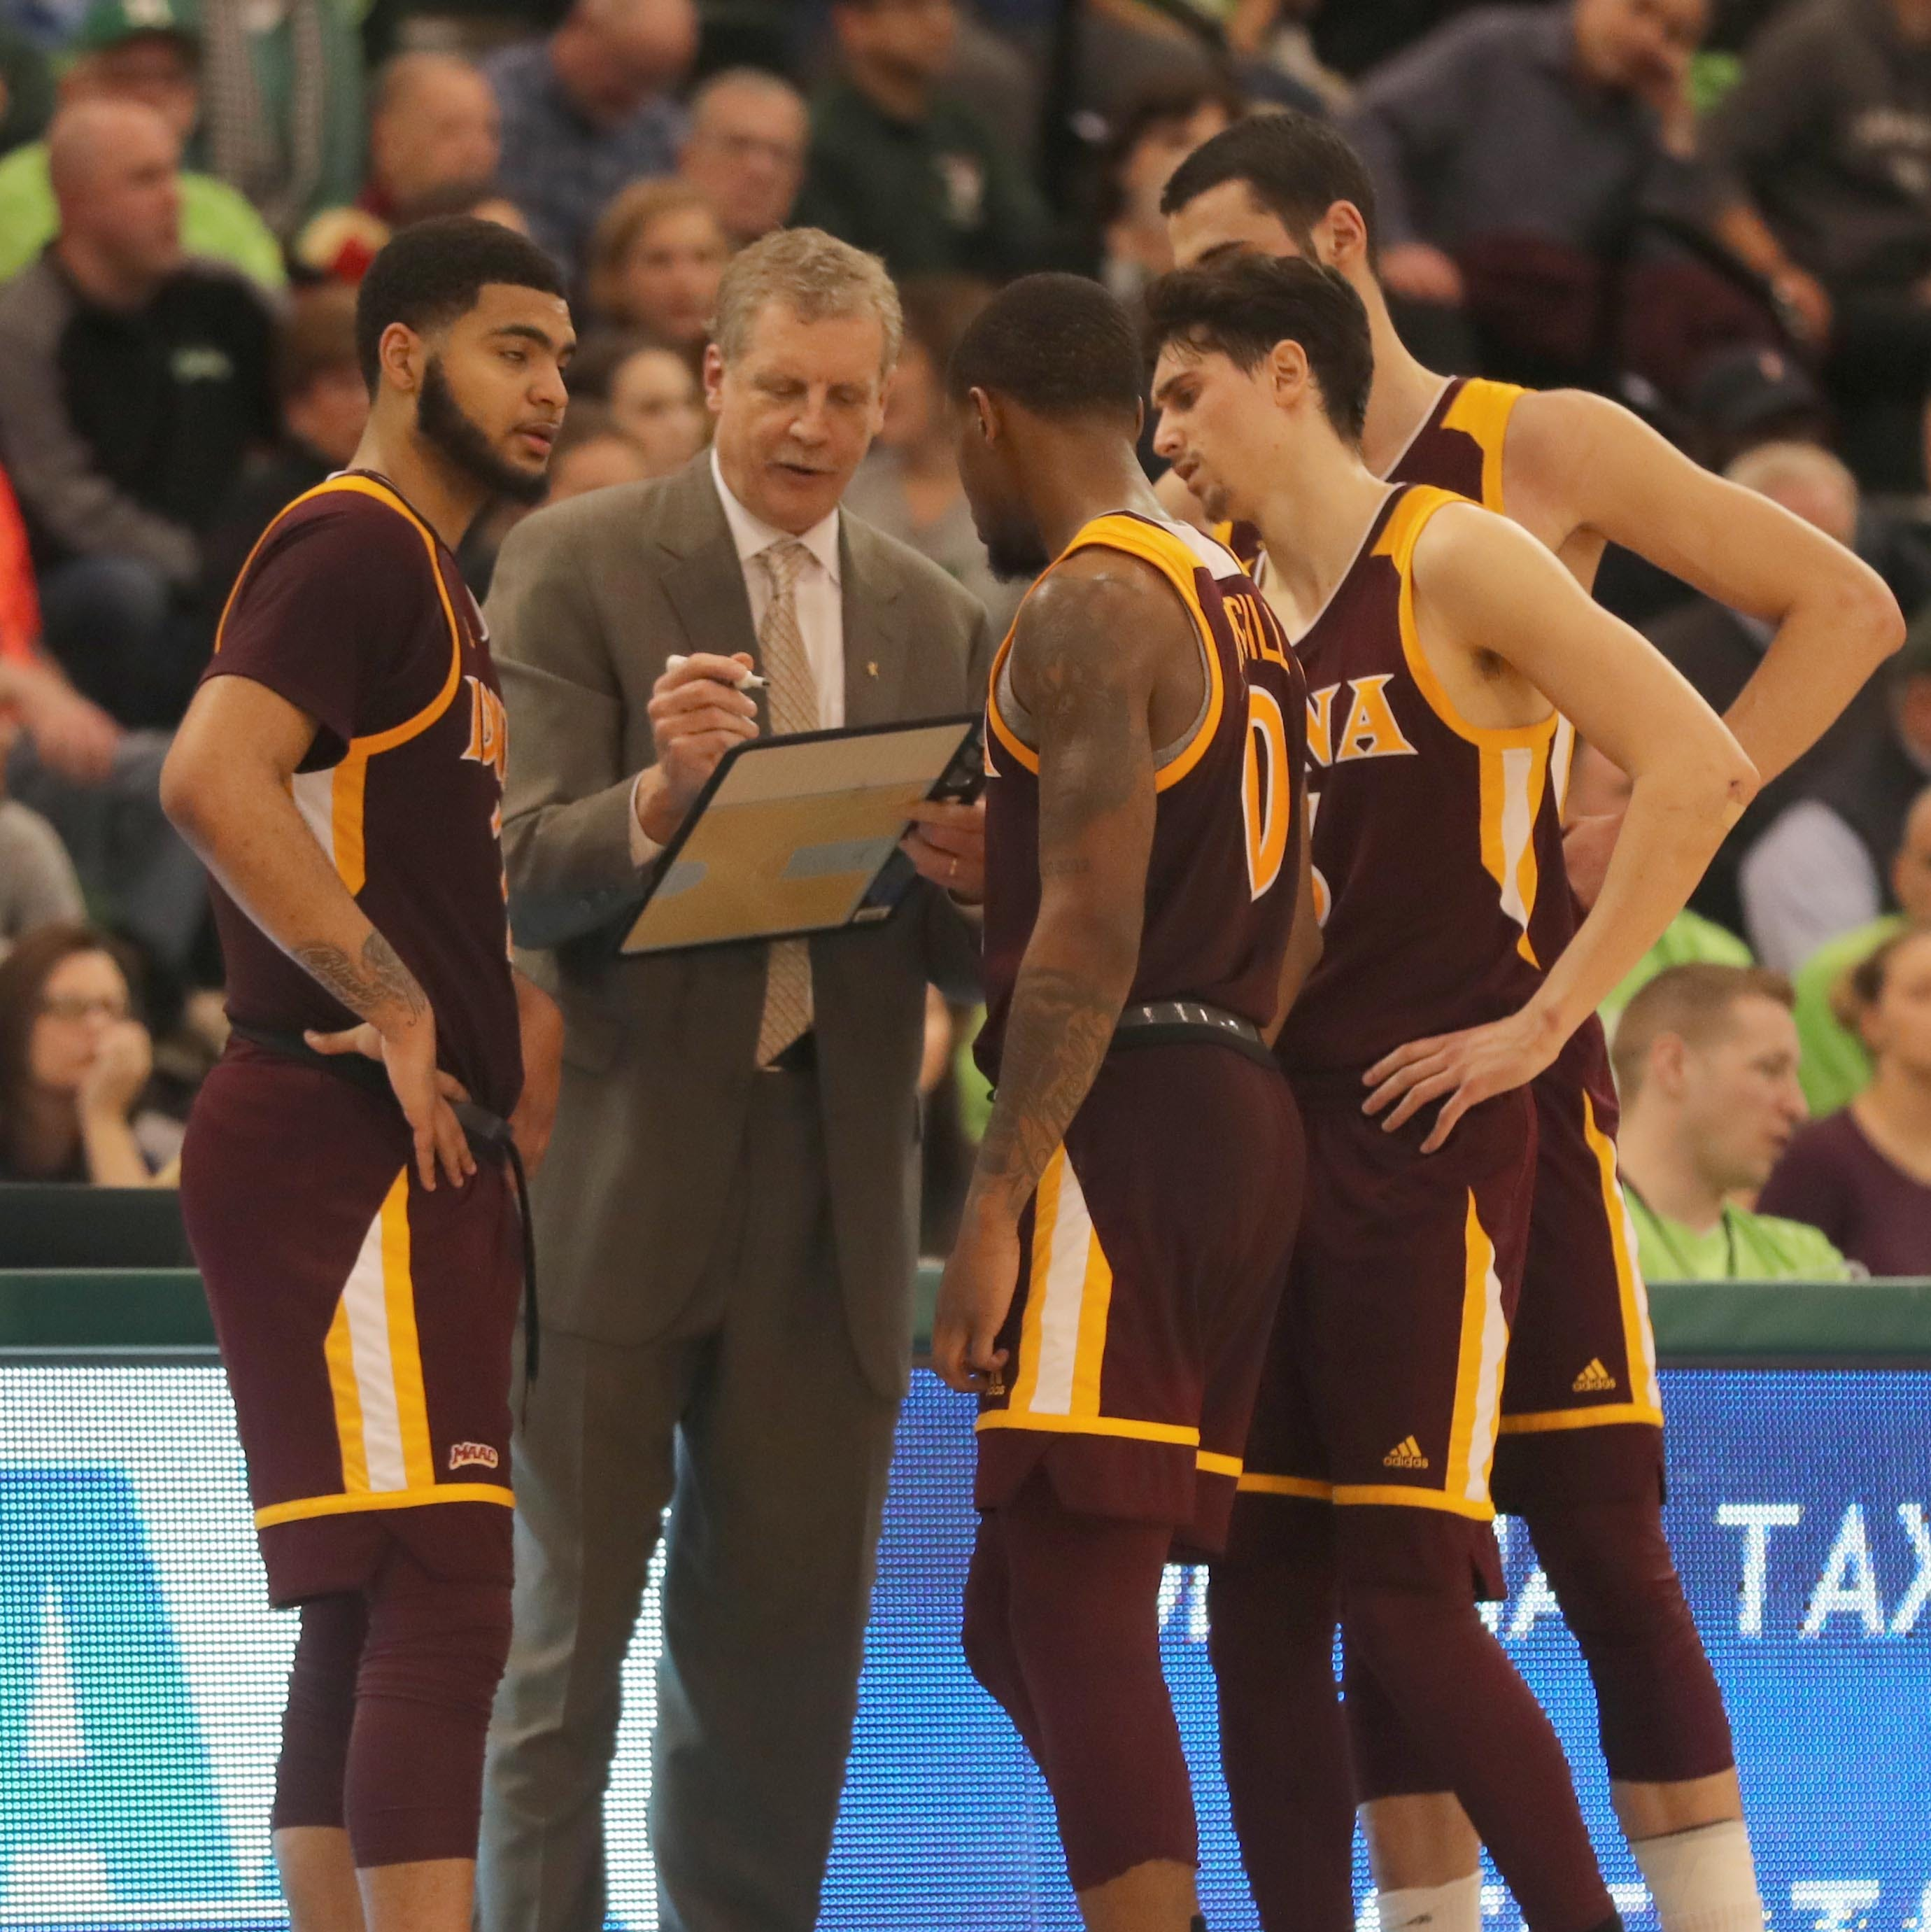 Thomson: Win or lose, Iona's season is Tim Cluess' masterstroke